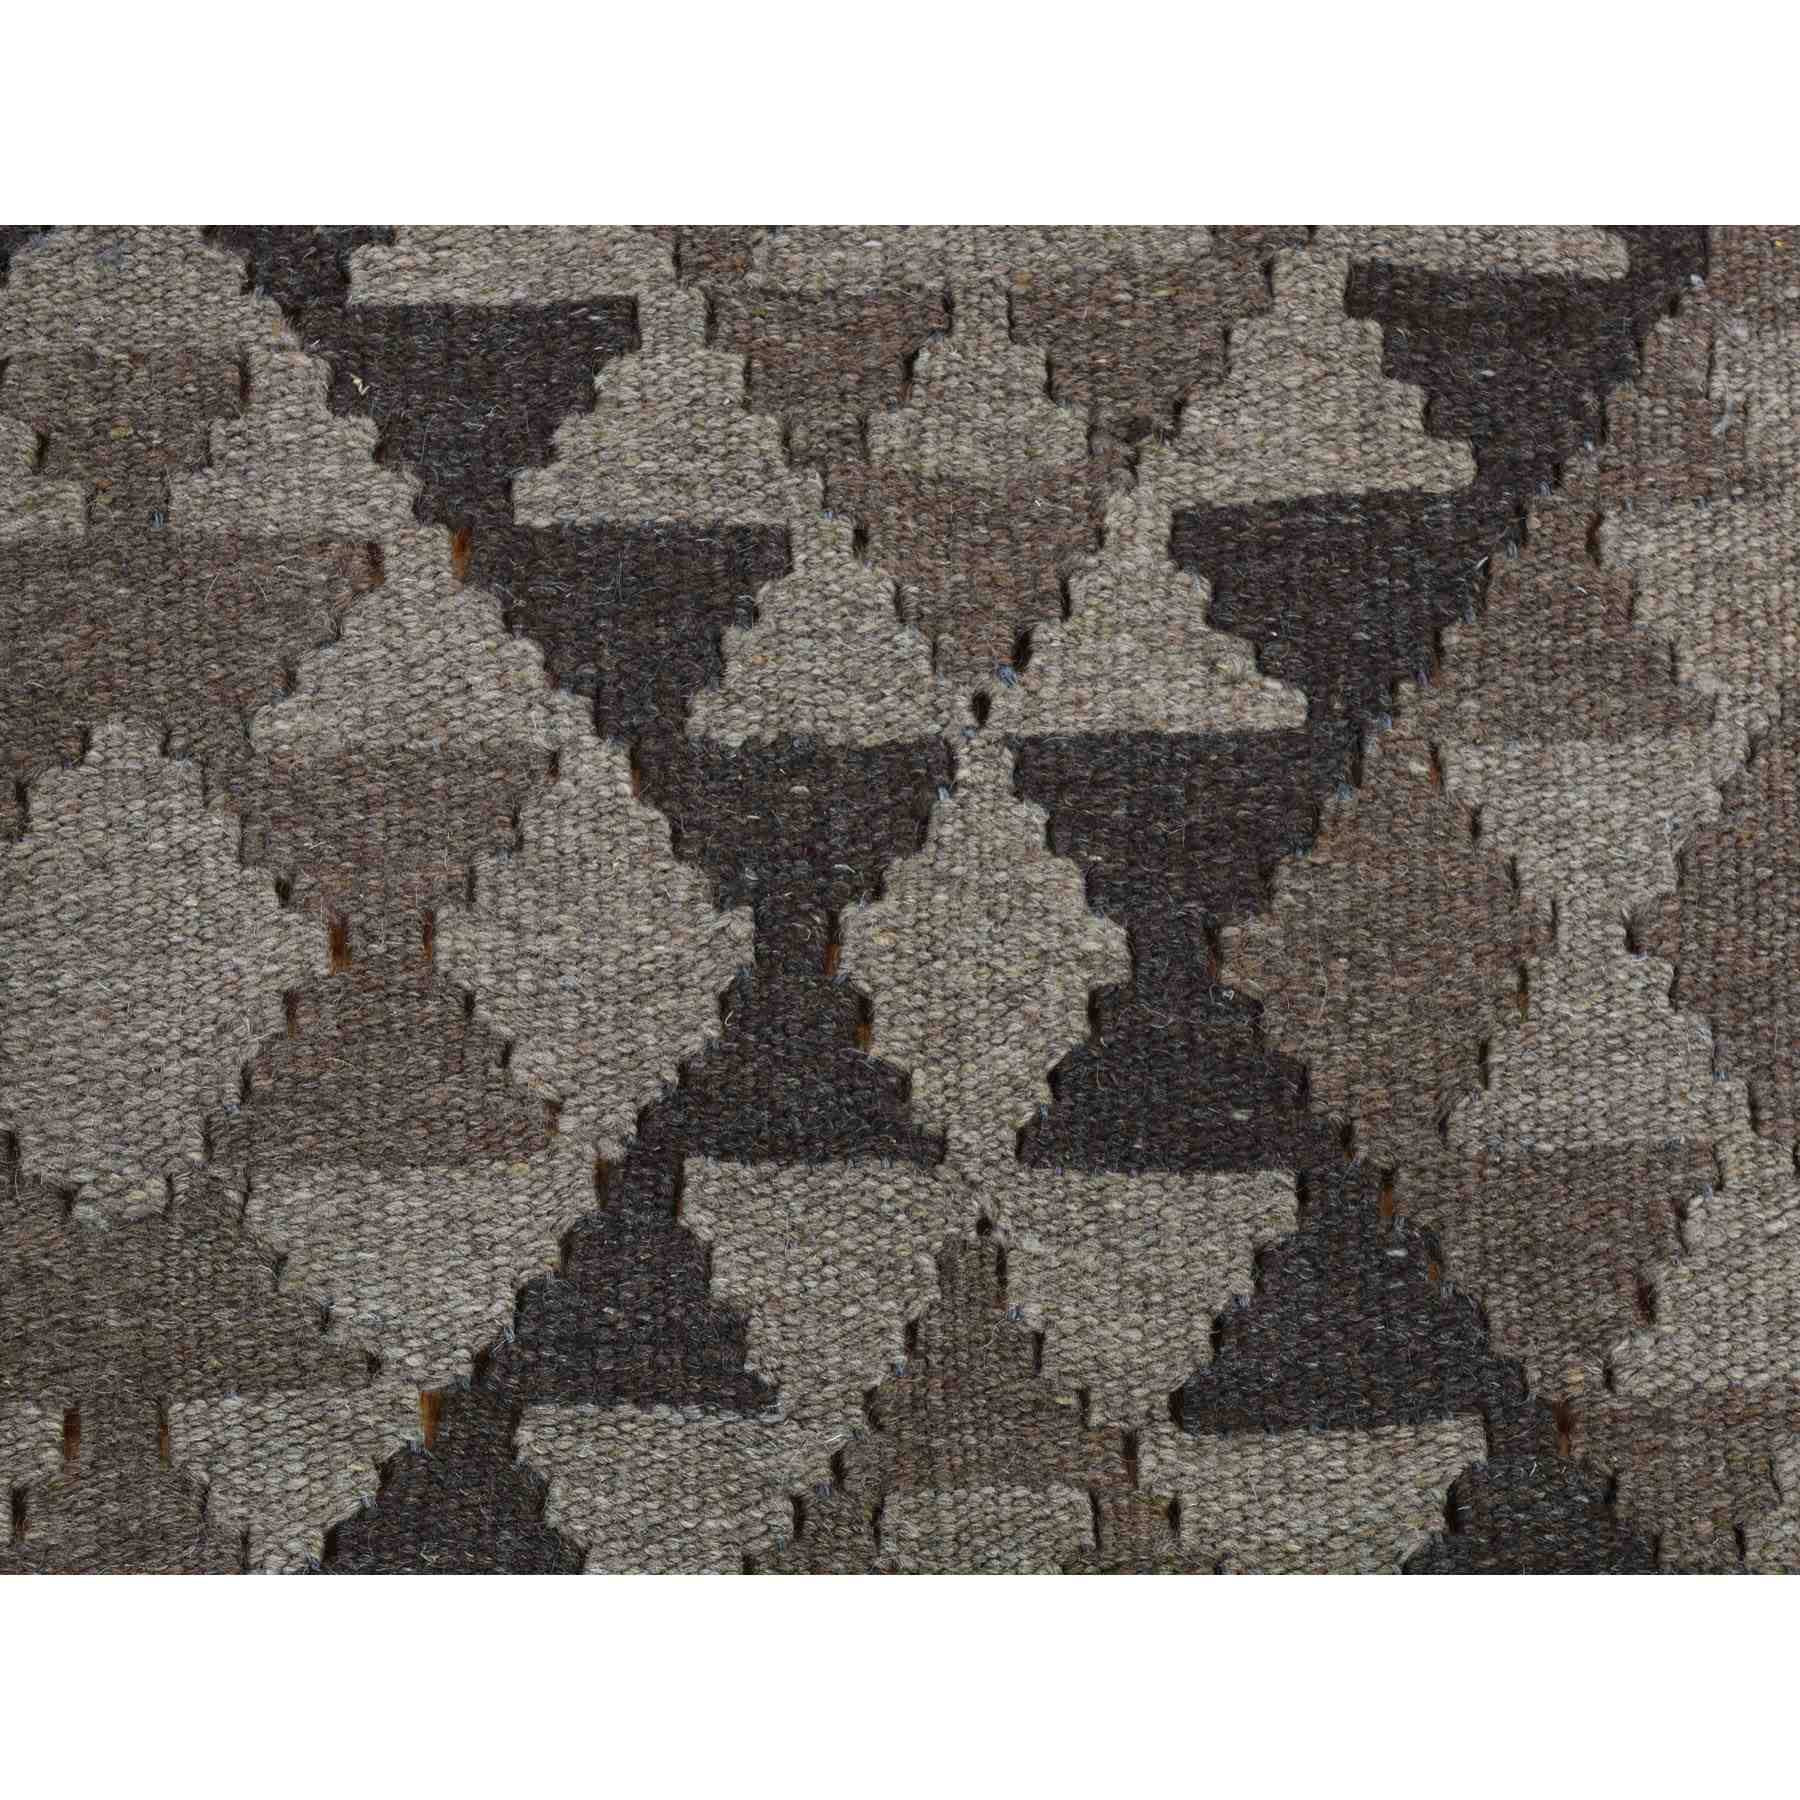 Flat-Weave-Hand-Woven-Rug-237315